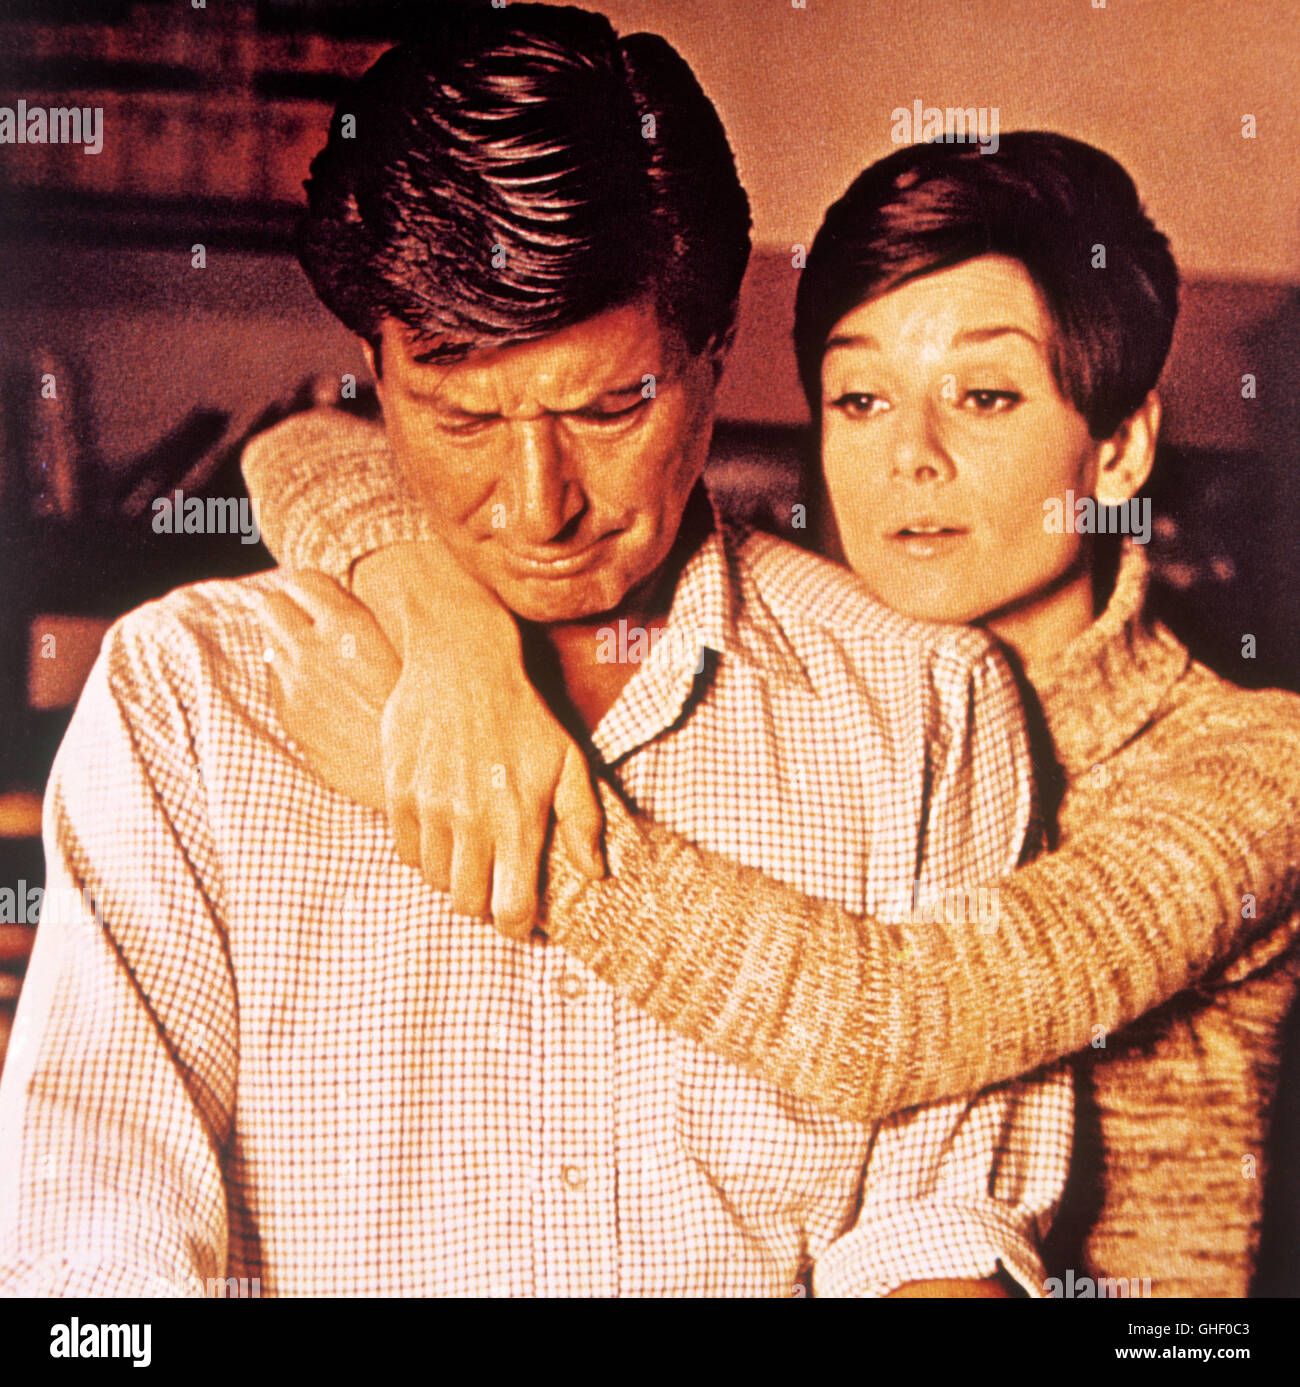 WAIT UNTIL DARK USA 1967 Terence Young AUDREY HEPBURN as blind Susy Hendrix, EFREM ZIMBALIST JR. as Sam Hendrix - Stock Image